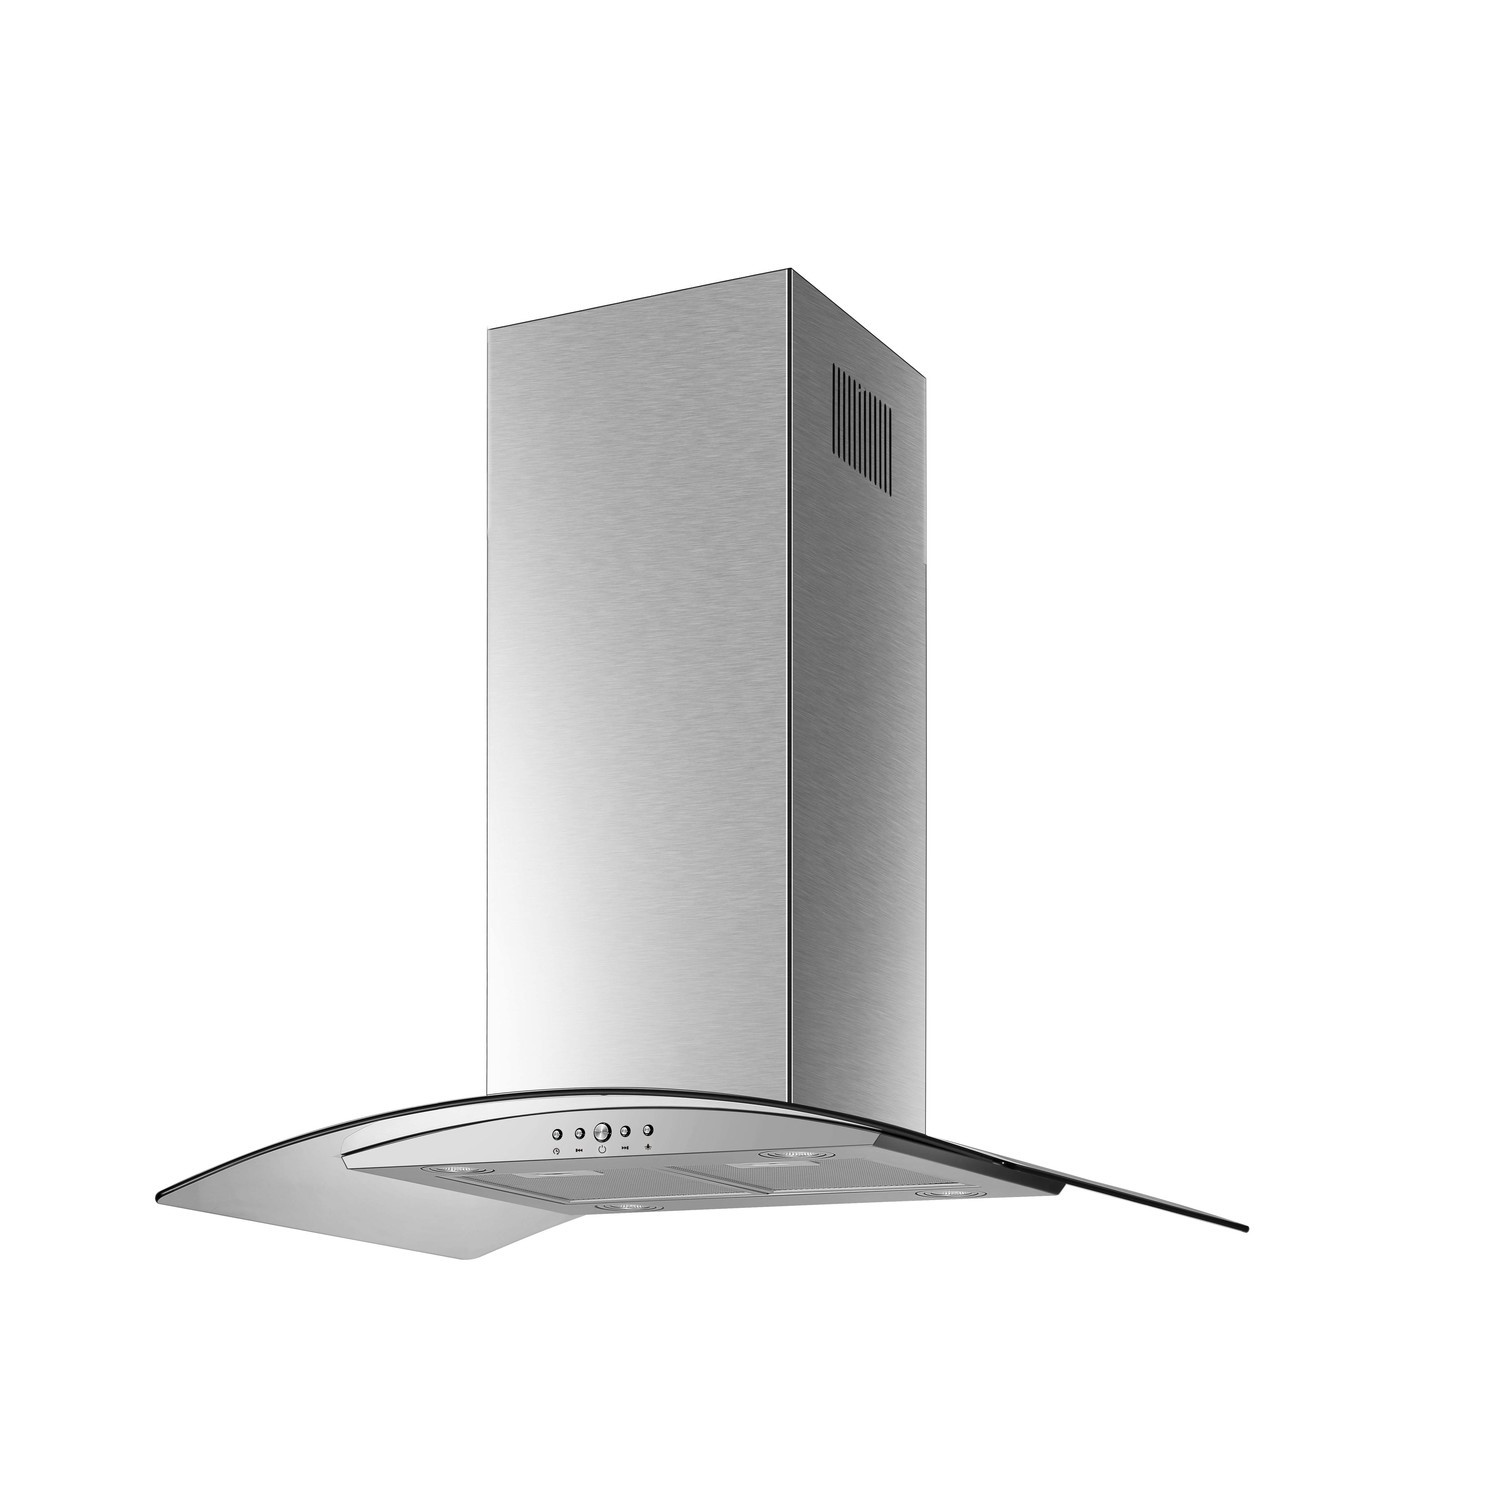 ElectriQ 90cm Curved Glass Island Cooker Hood Stainless Steel   5 Year  Warranty